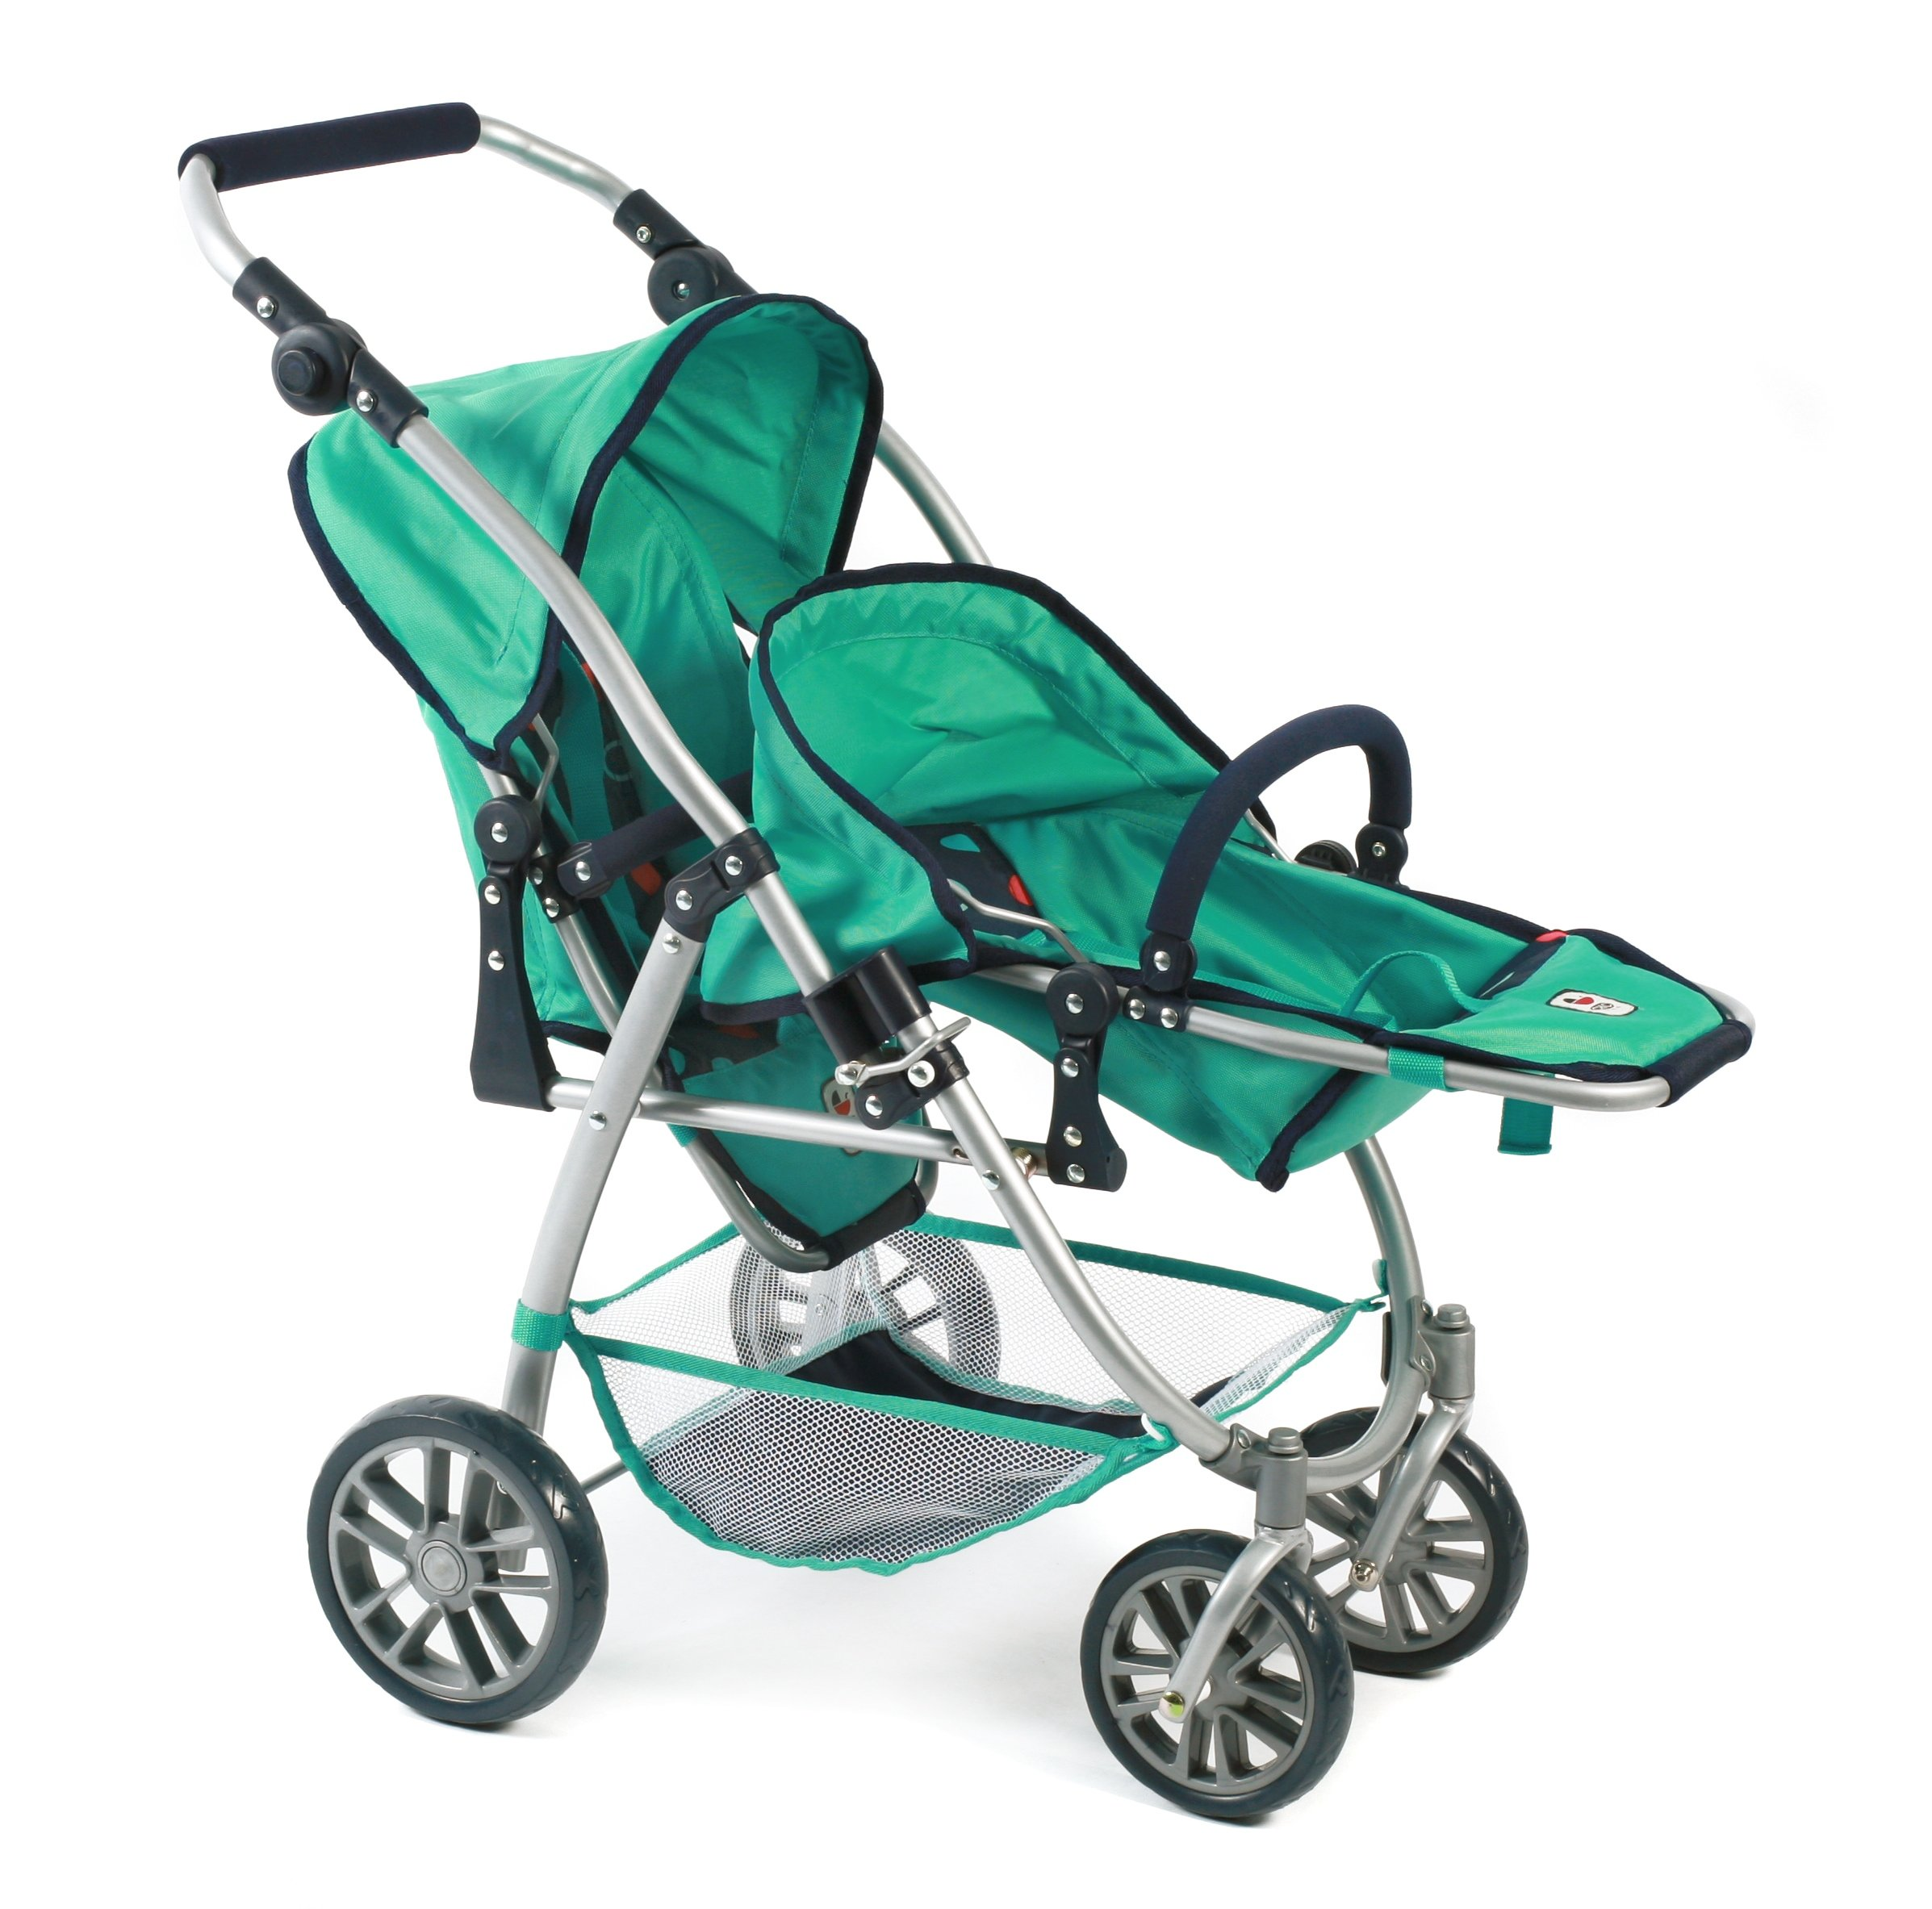 Bayer Chic 2000 689 21 Doll pram, Mint Bayer Chic Modern twin pushchairs with two removable and to be in a lying position adjustable Sport seating The seat of your Twin trolley are detachable and can be in multiple directions he tandem Buggy has a height-adjustable slider from 55 - 33 cm 4